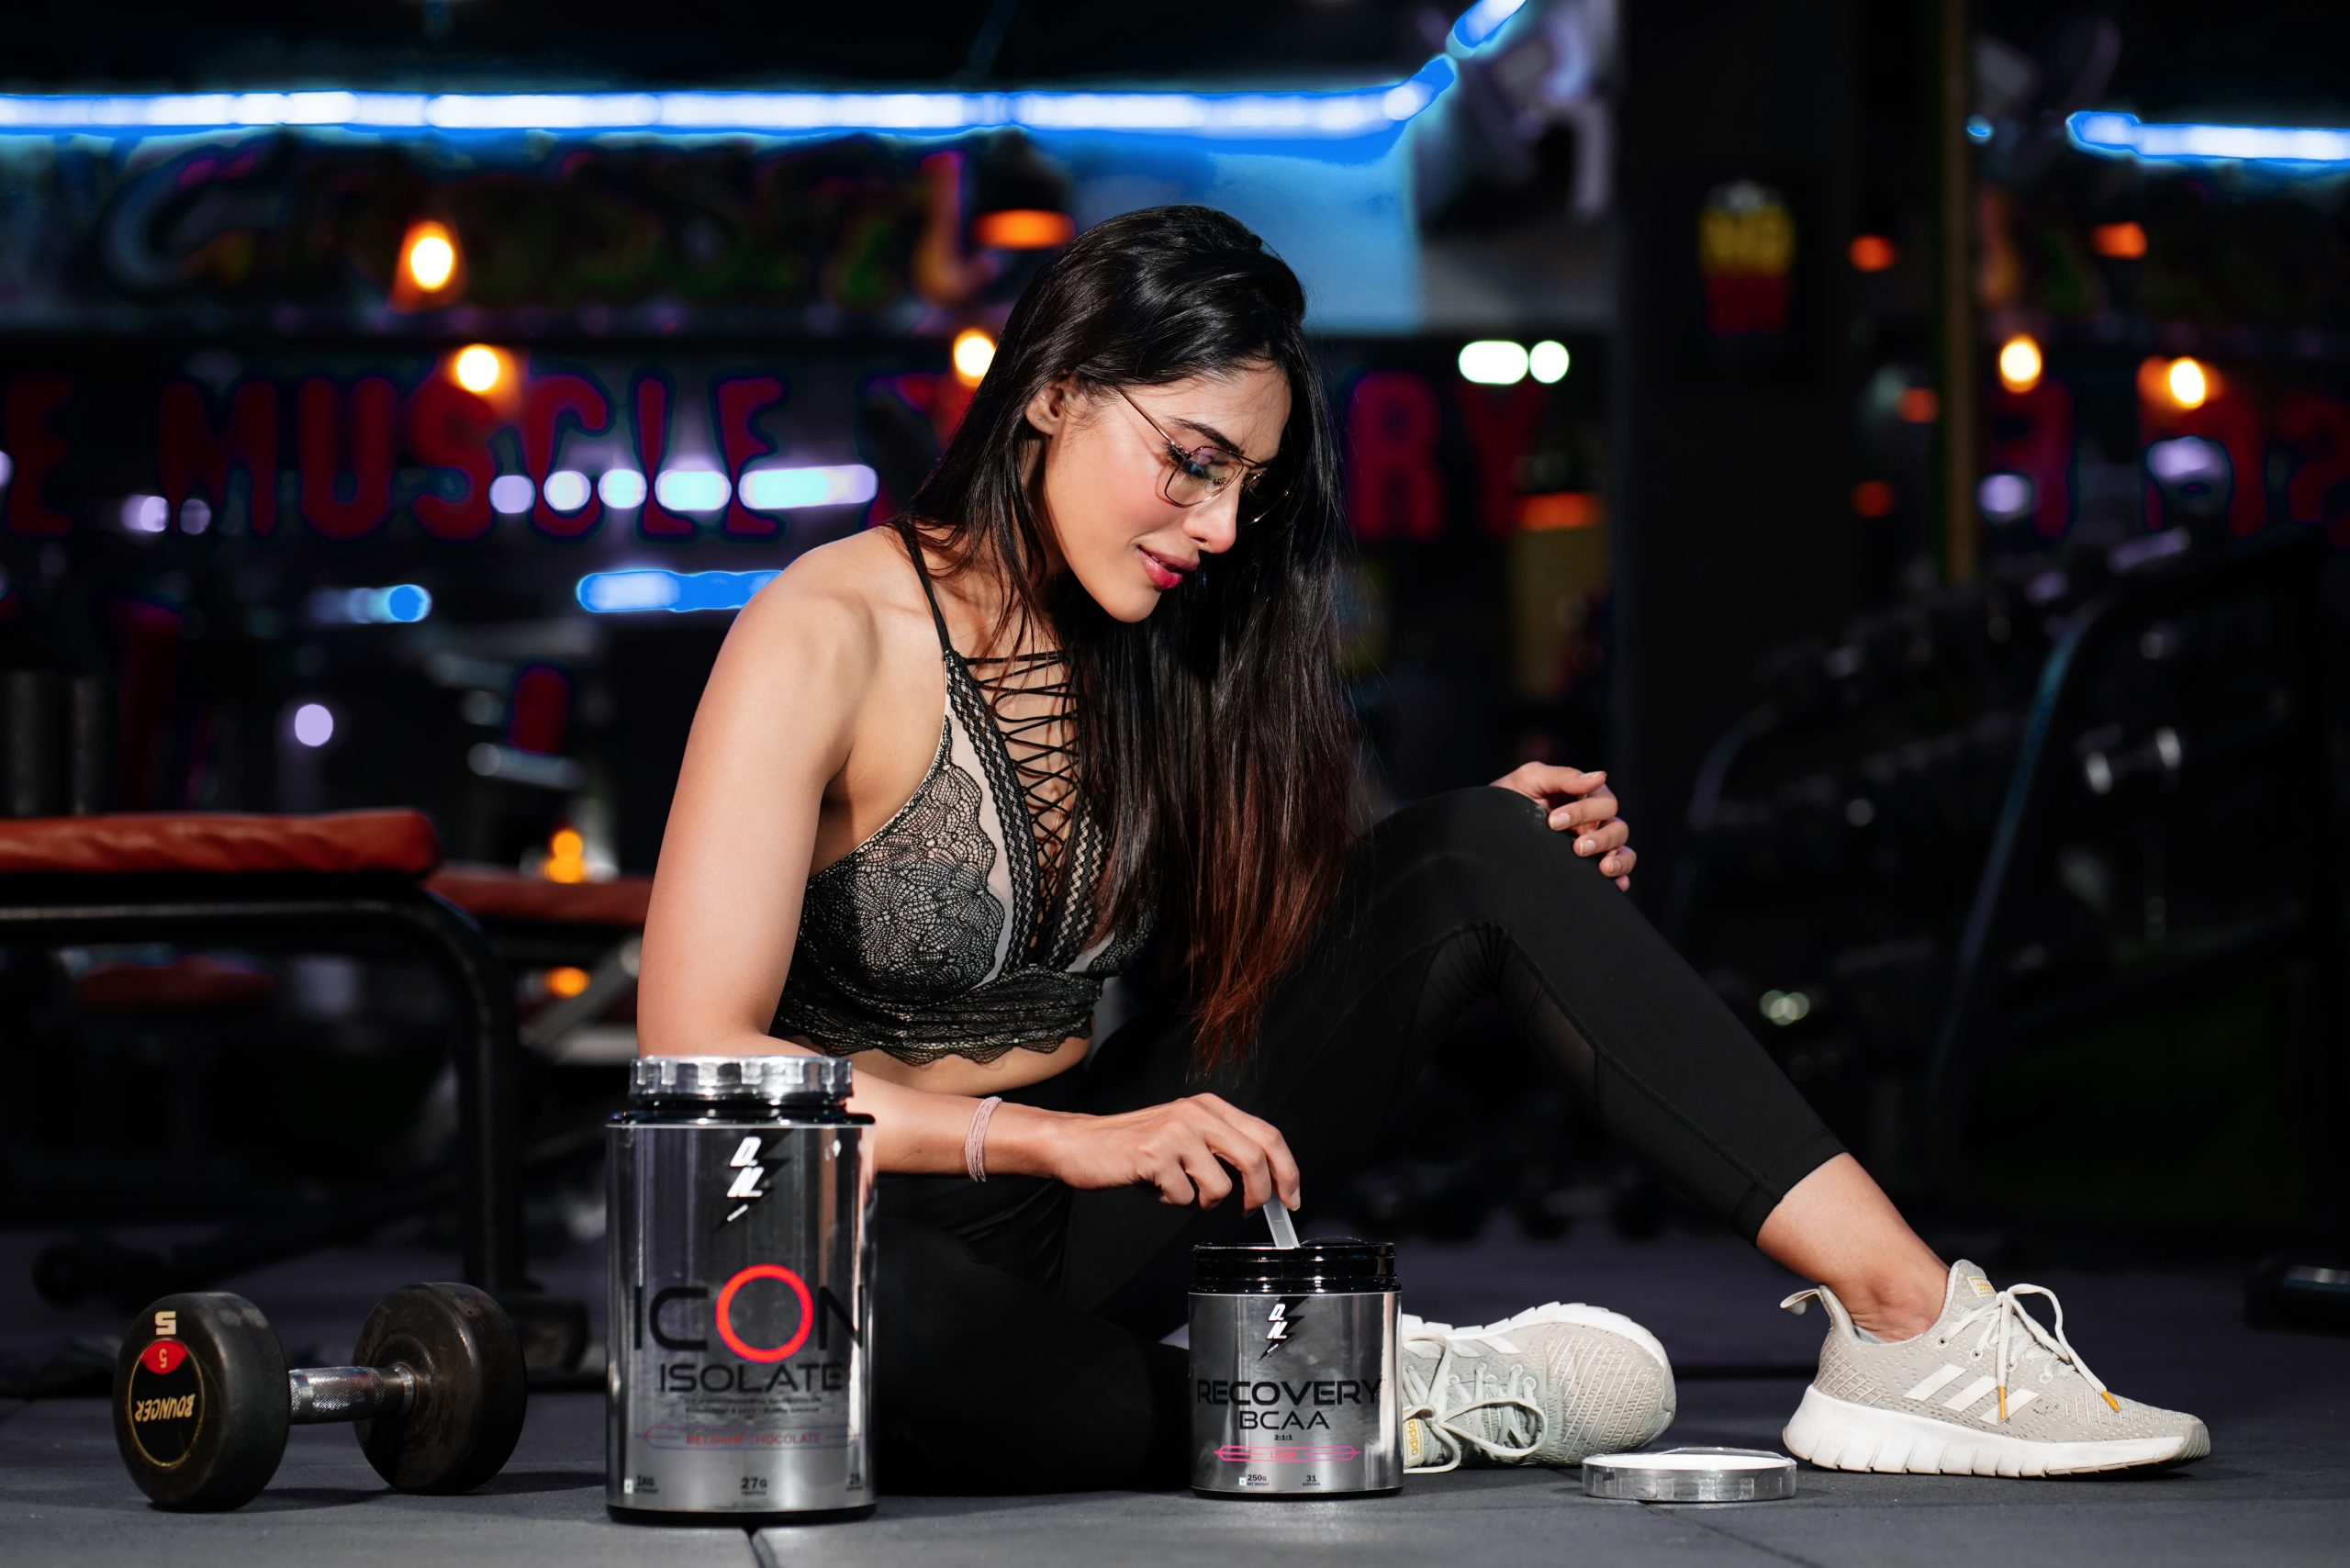 A fitness model preparing her supplements